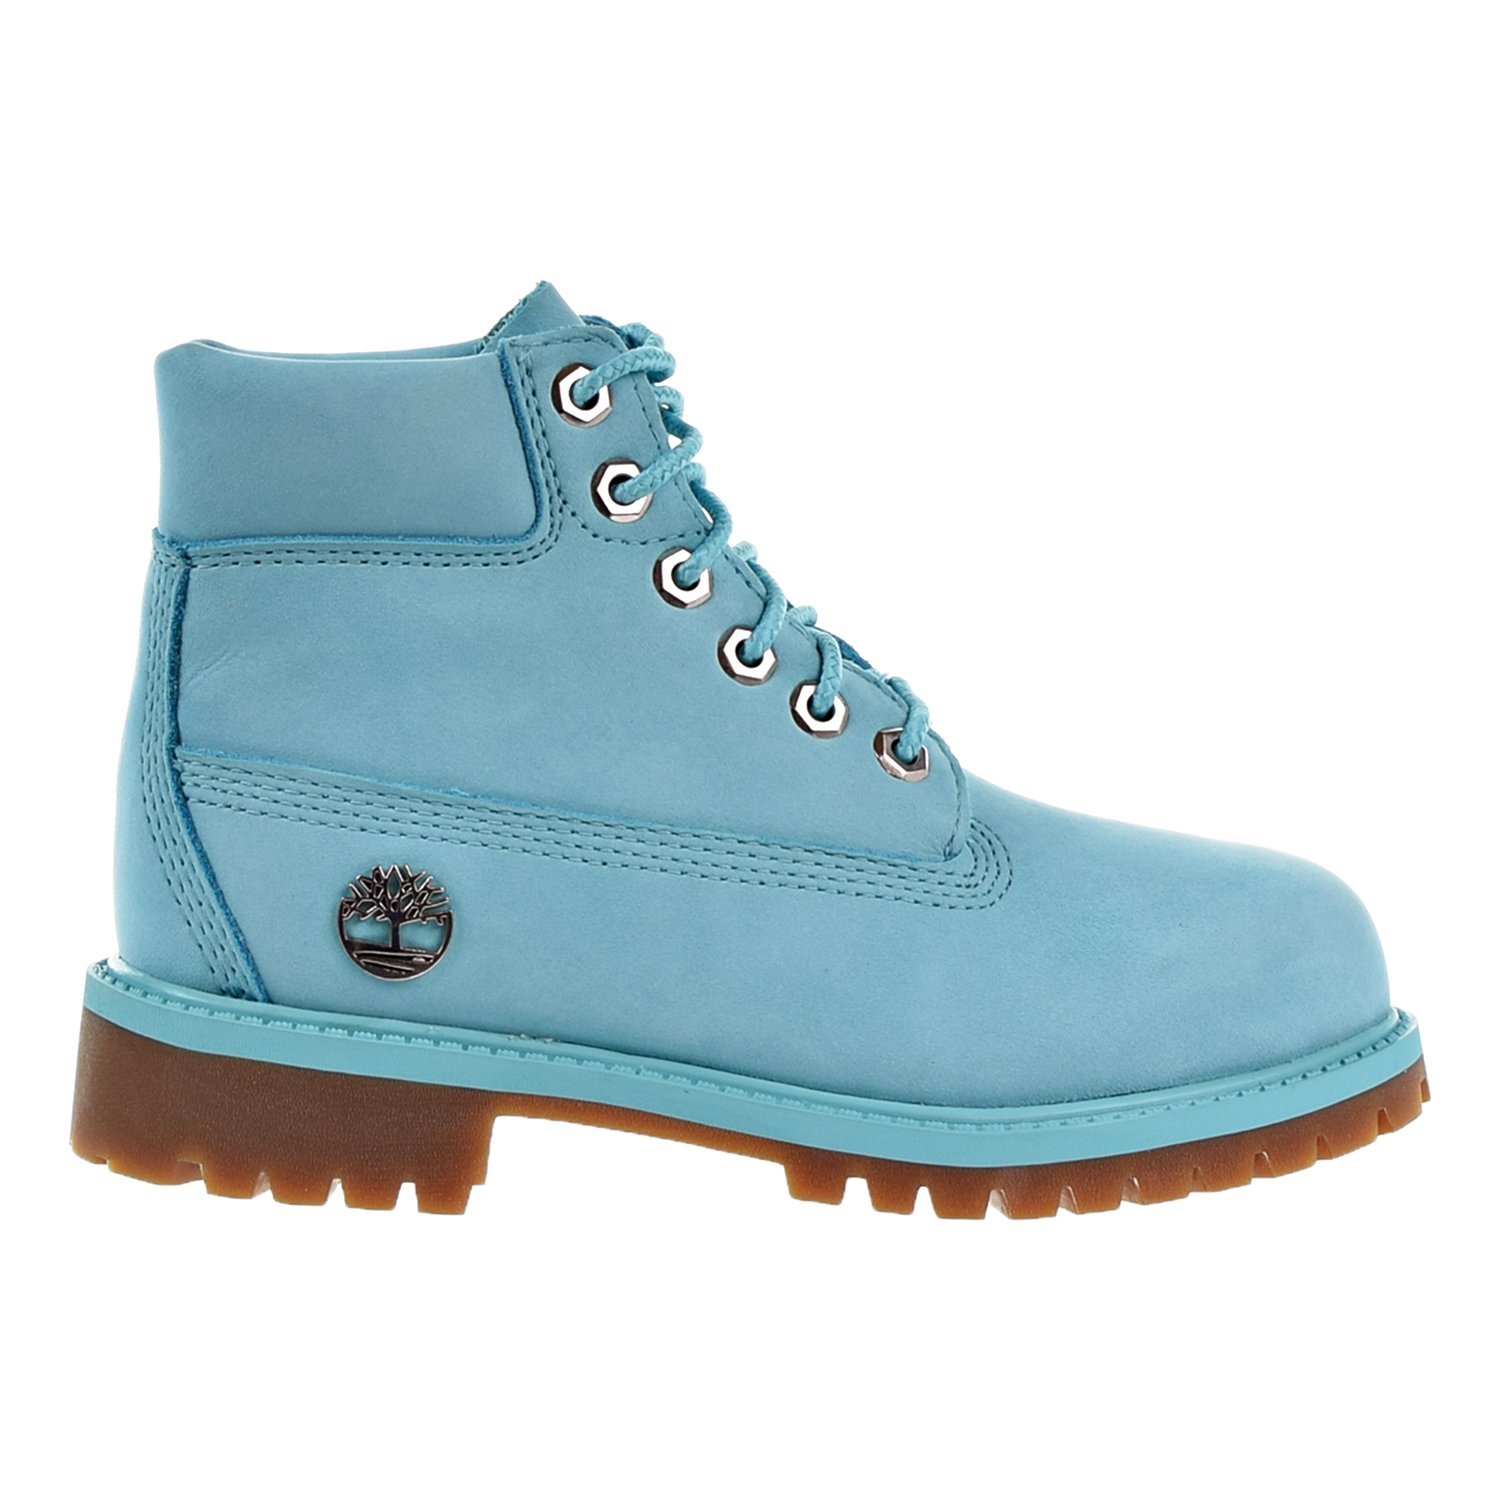 Timberland 6 Inch Premium Little Kid's Boots Blue tb0a1jne (1 M US)